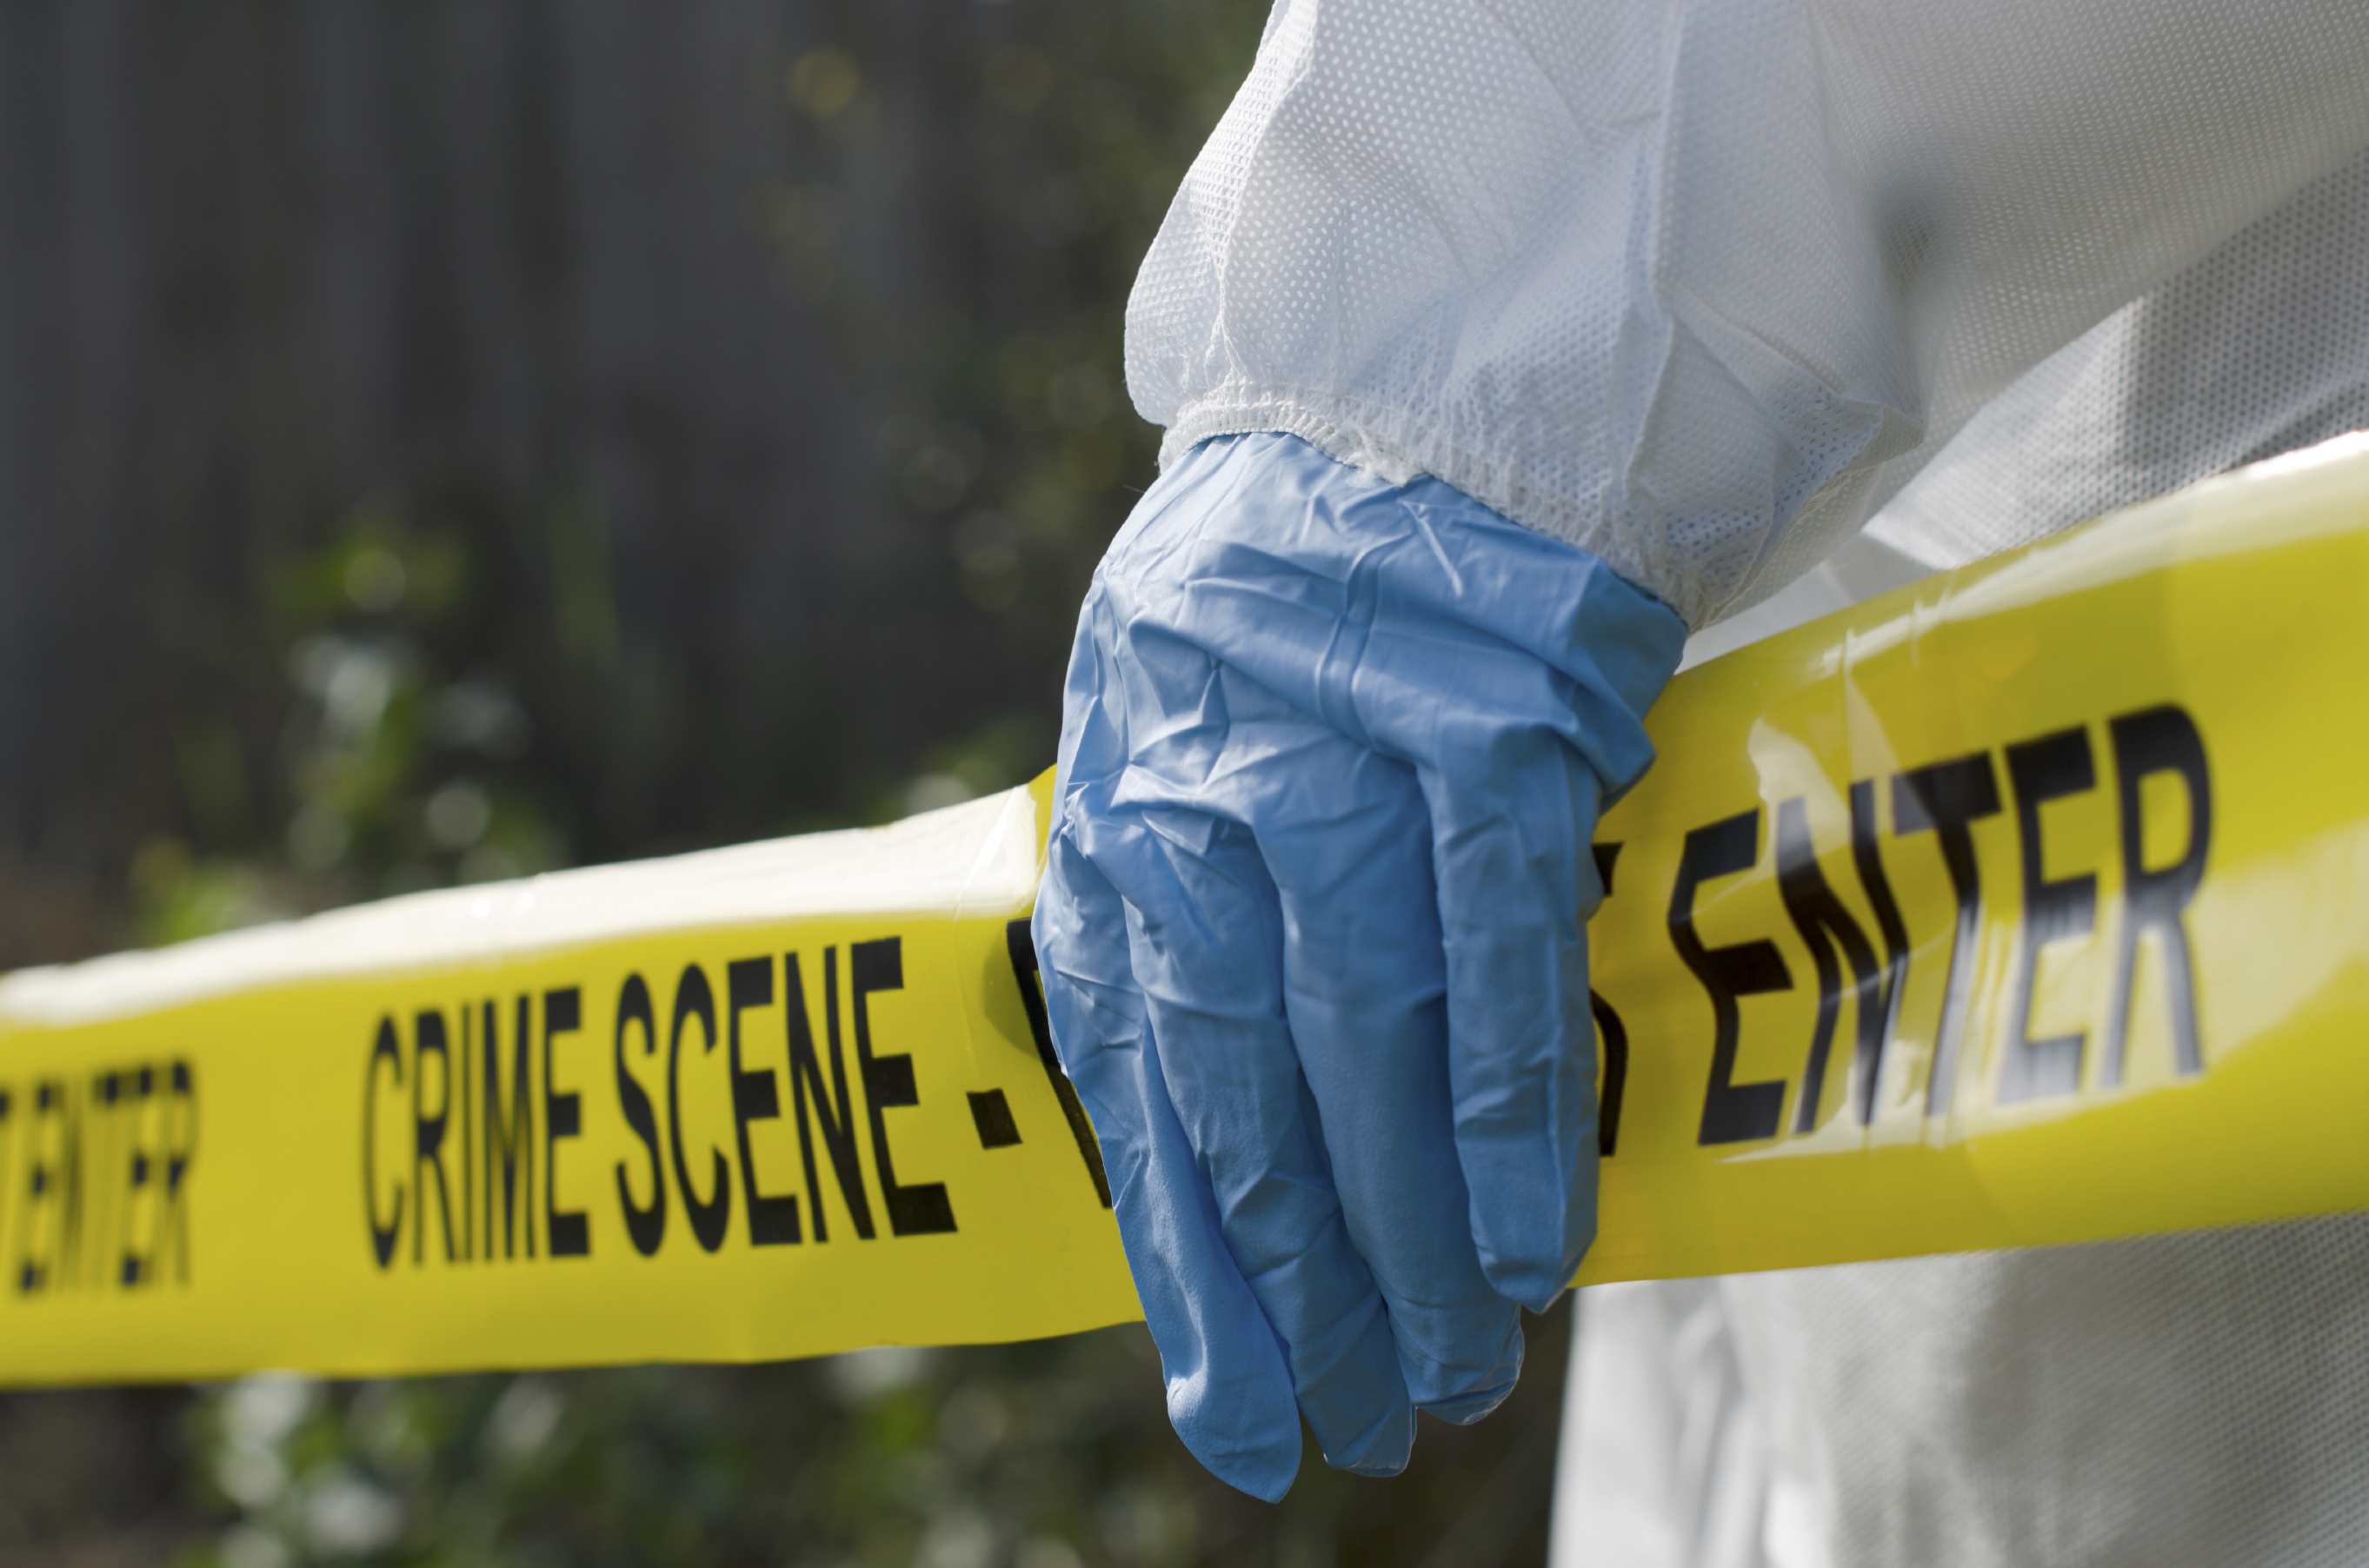 Forensic worker in front of crime scene tape